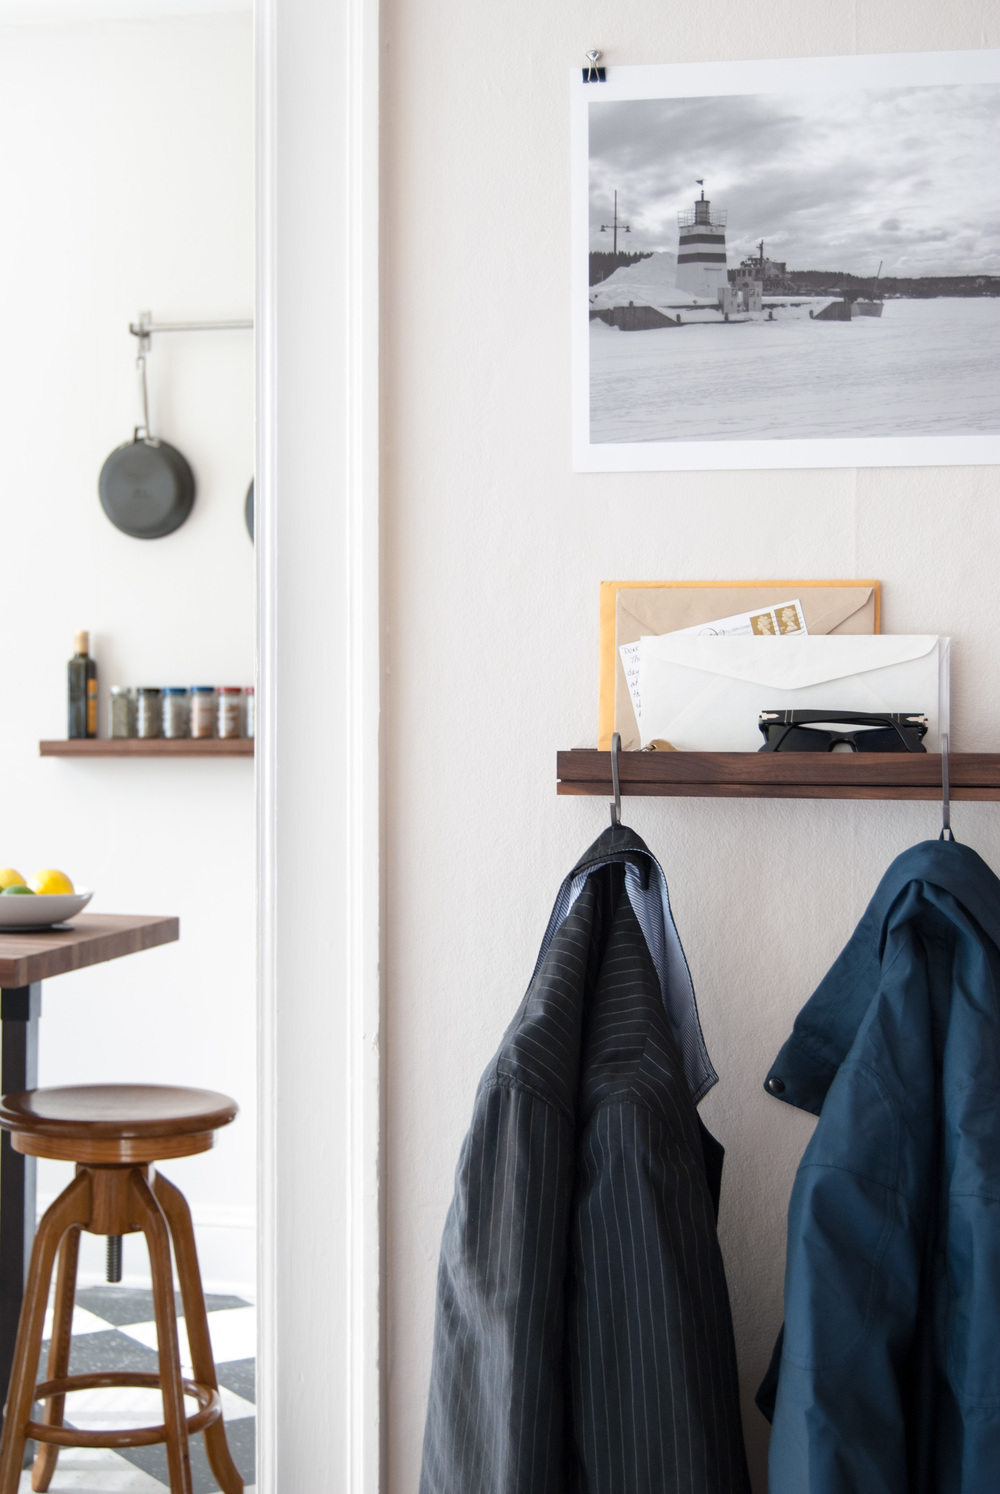 Entry shelf coatrack - SINGULAR wall shelf